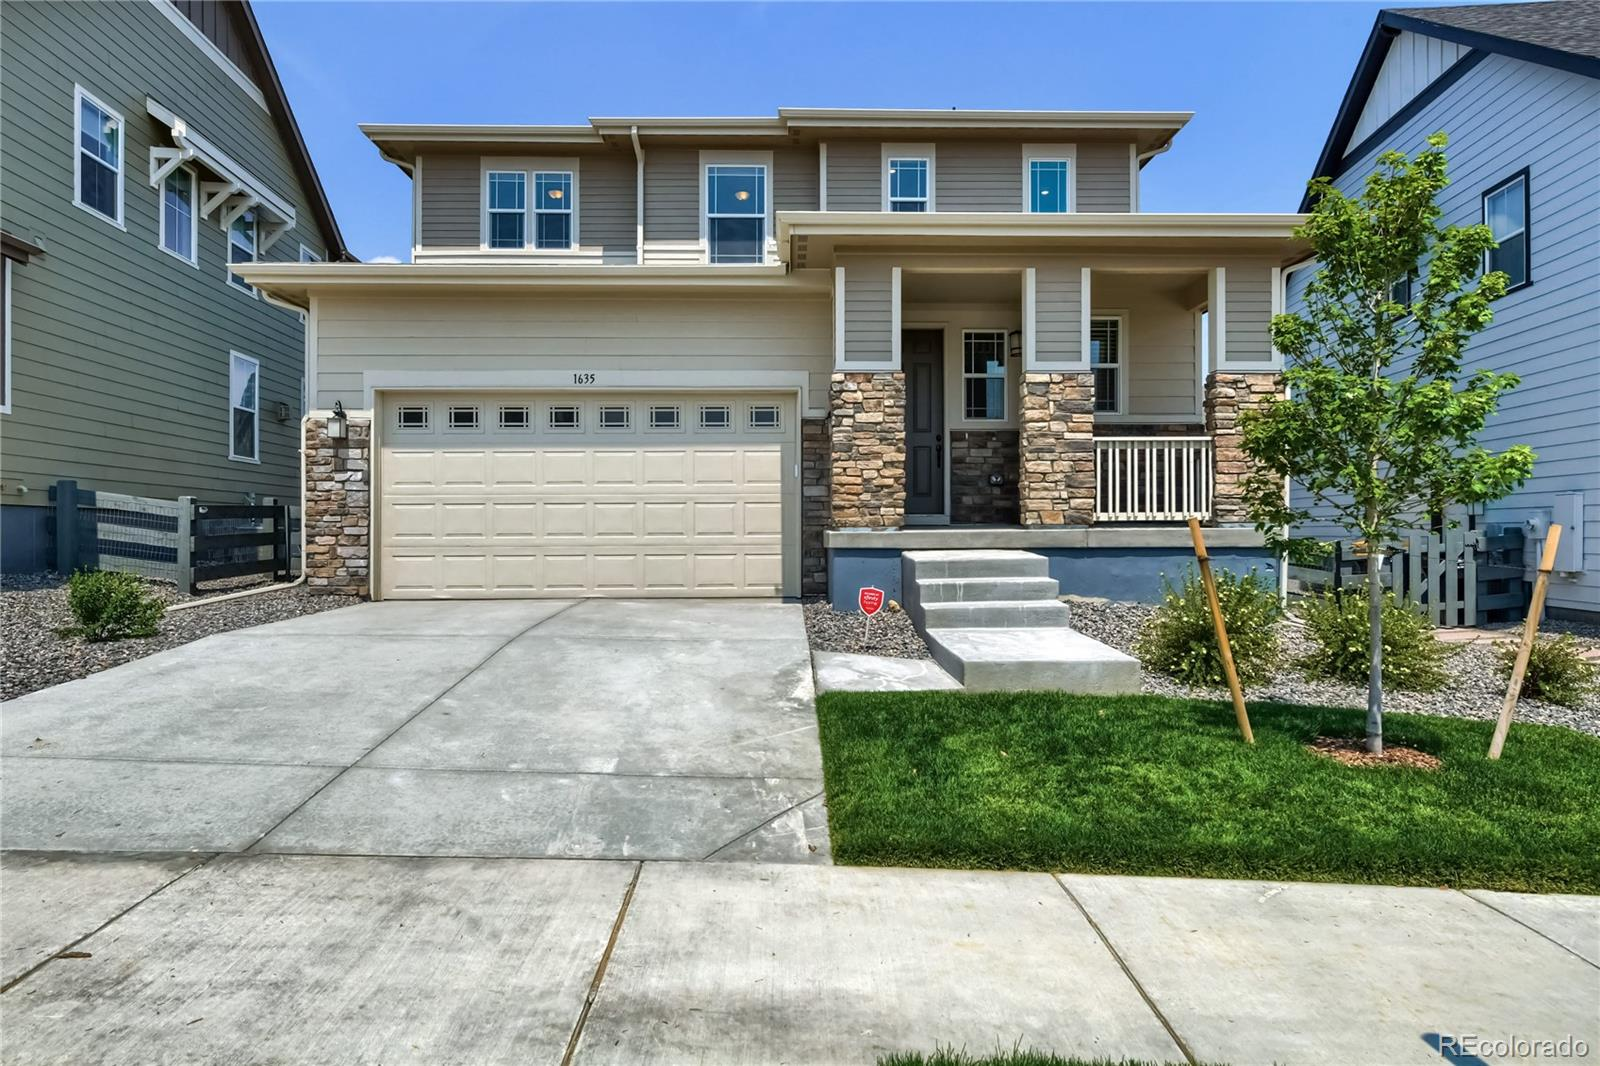 1635 Stable View Drive, Castle Pines, CO 80108